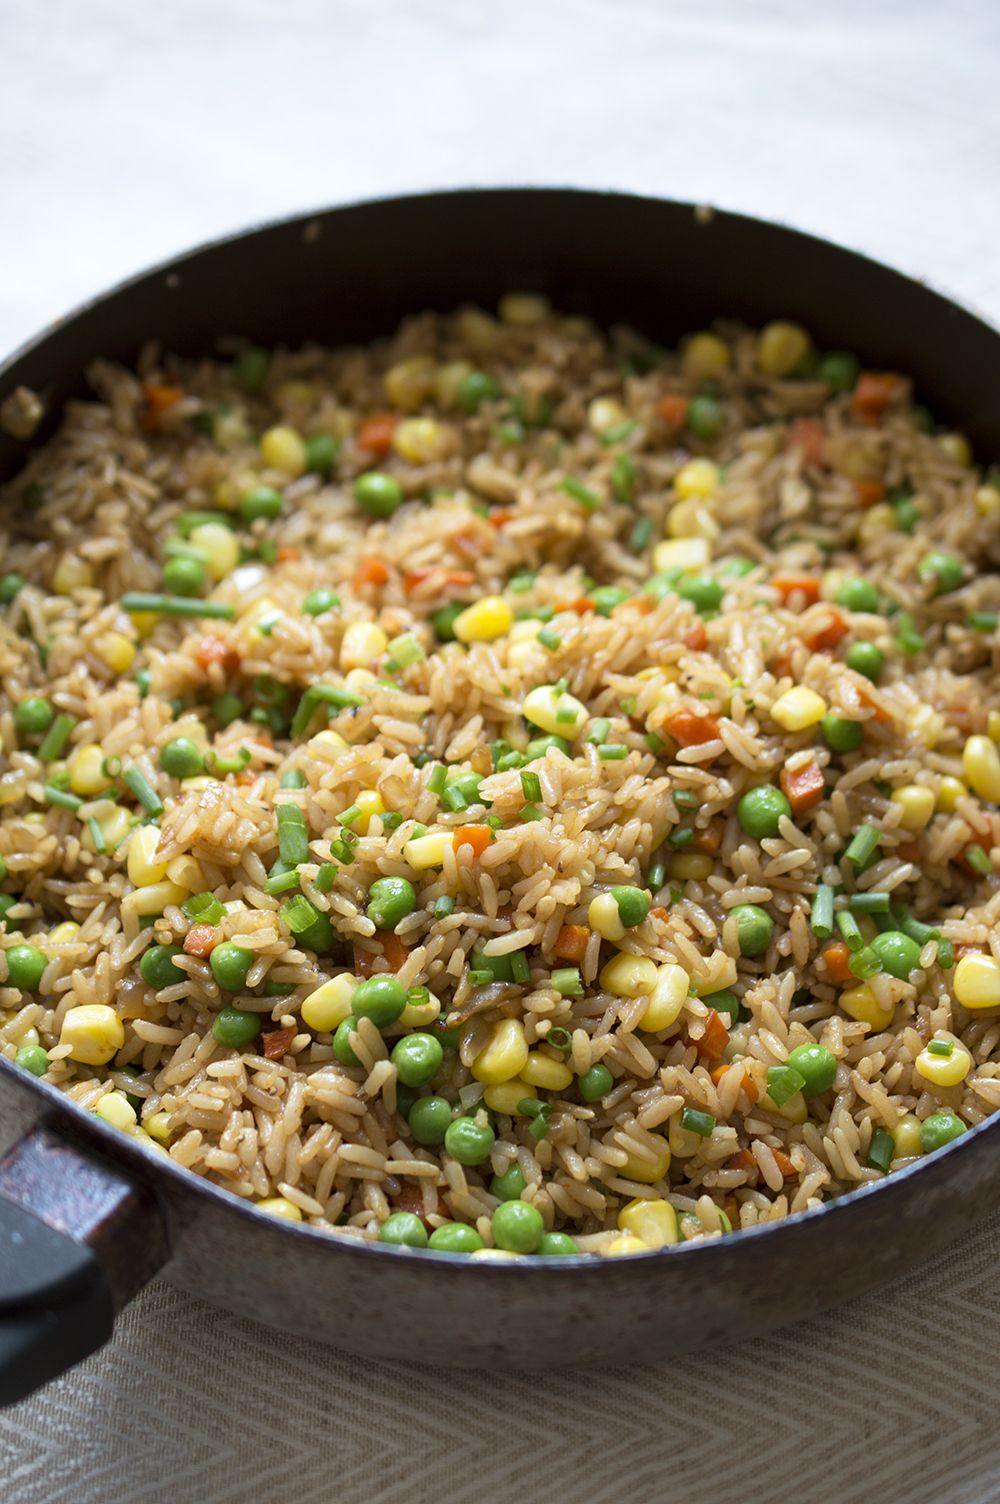 This is not your typical vegetable fried rice. This fried rice is ...